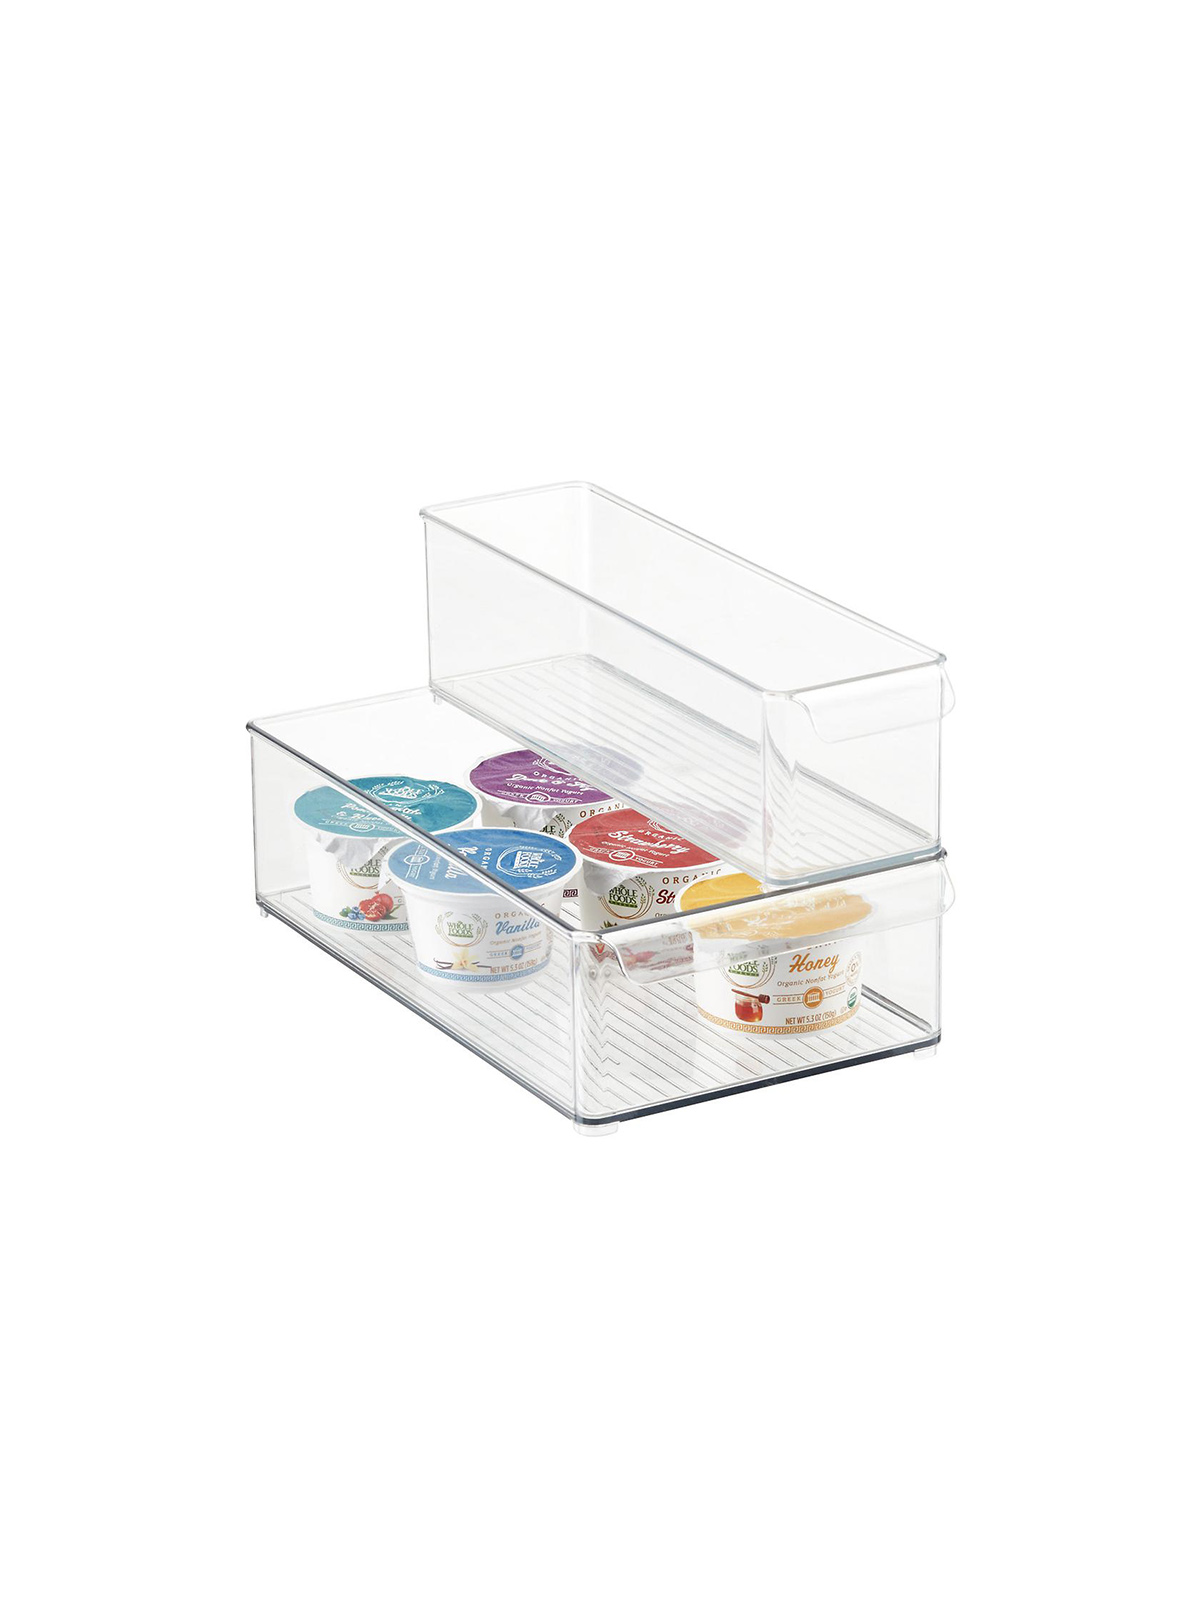 Best Kitchen Organization Ideas, Clear Plastic Fridge Bins